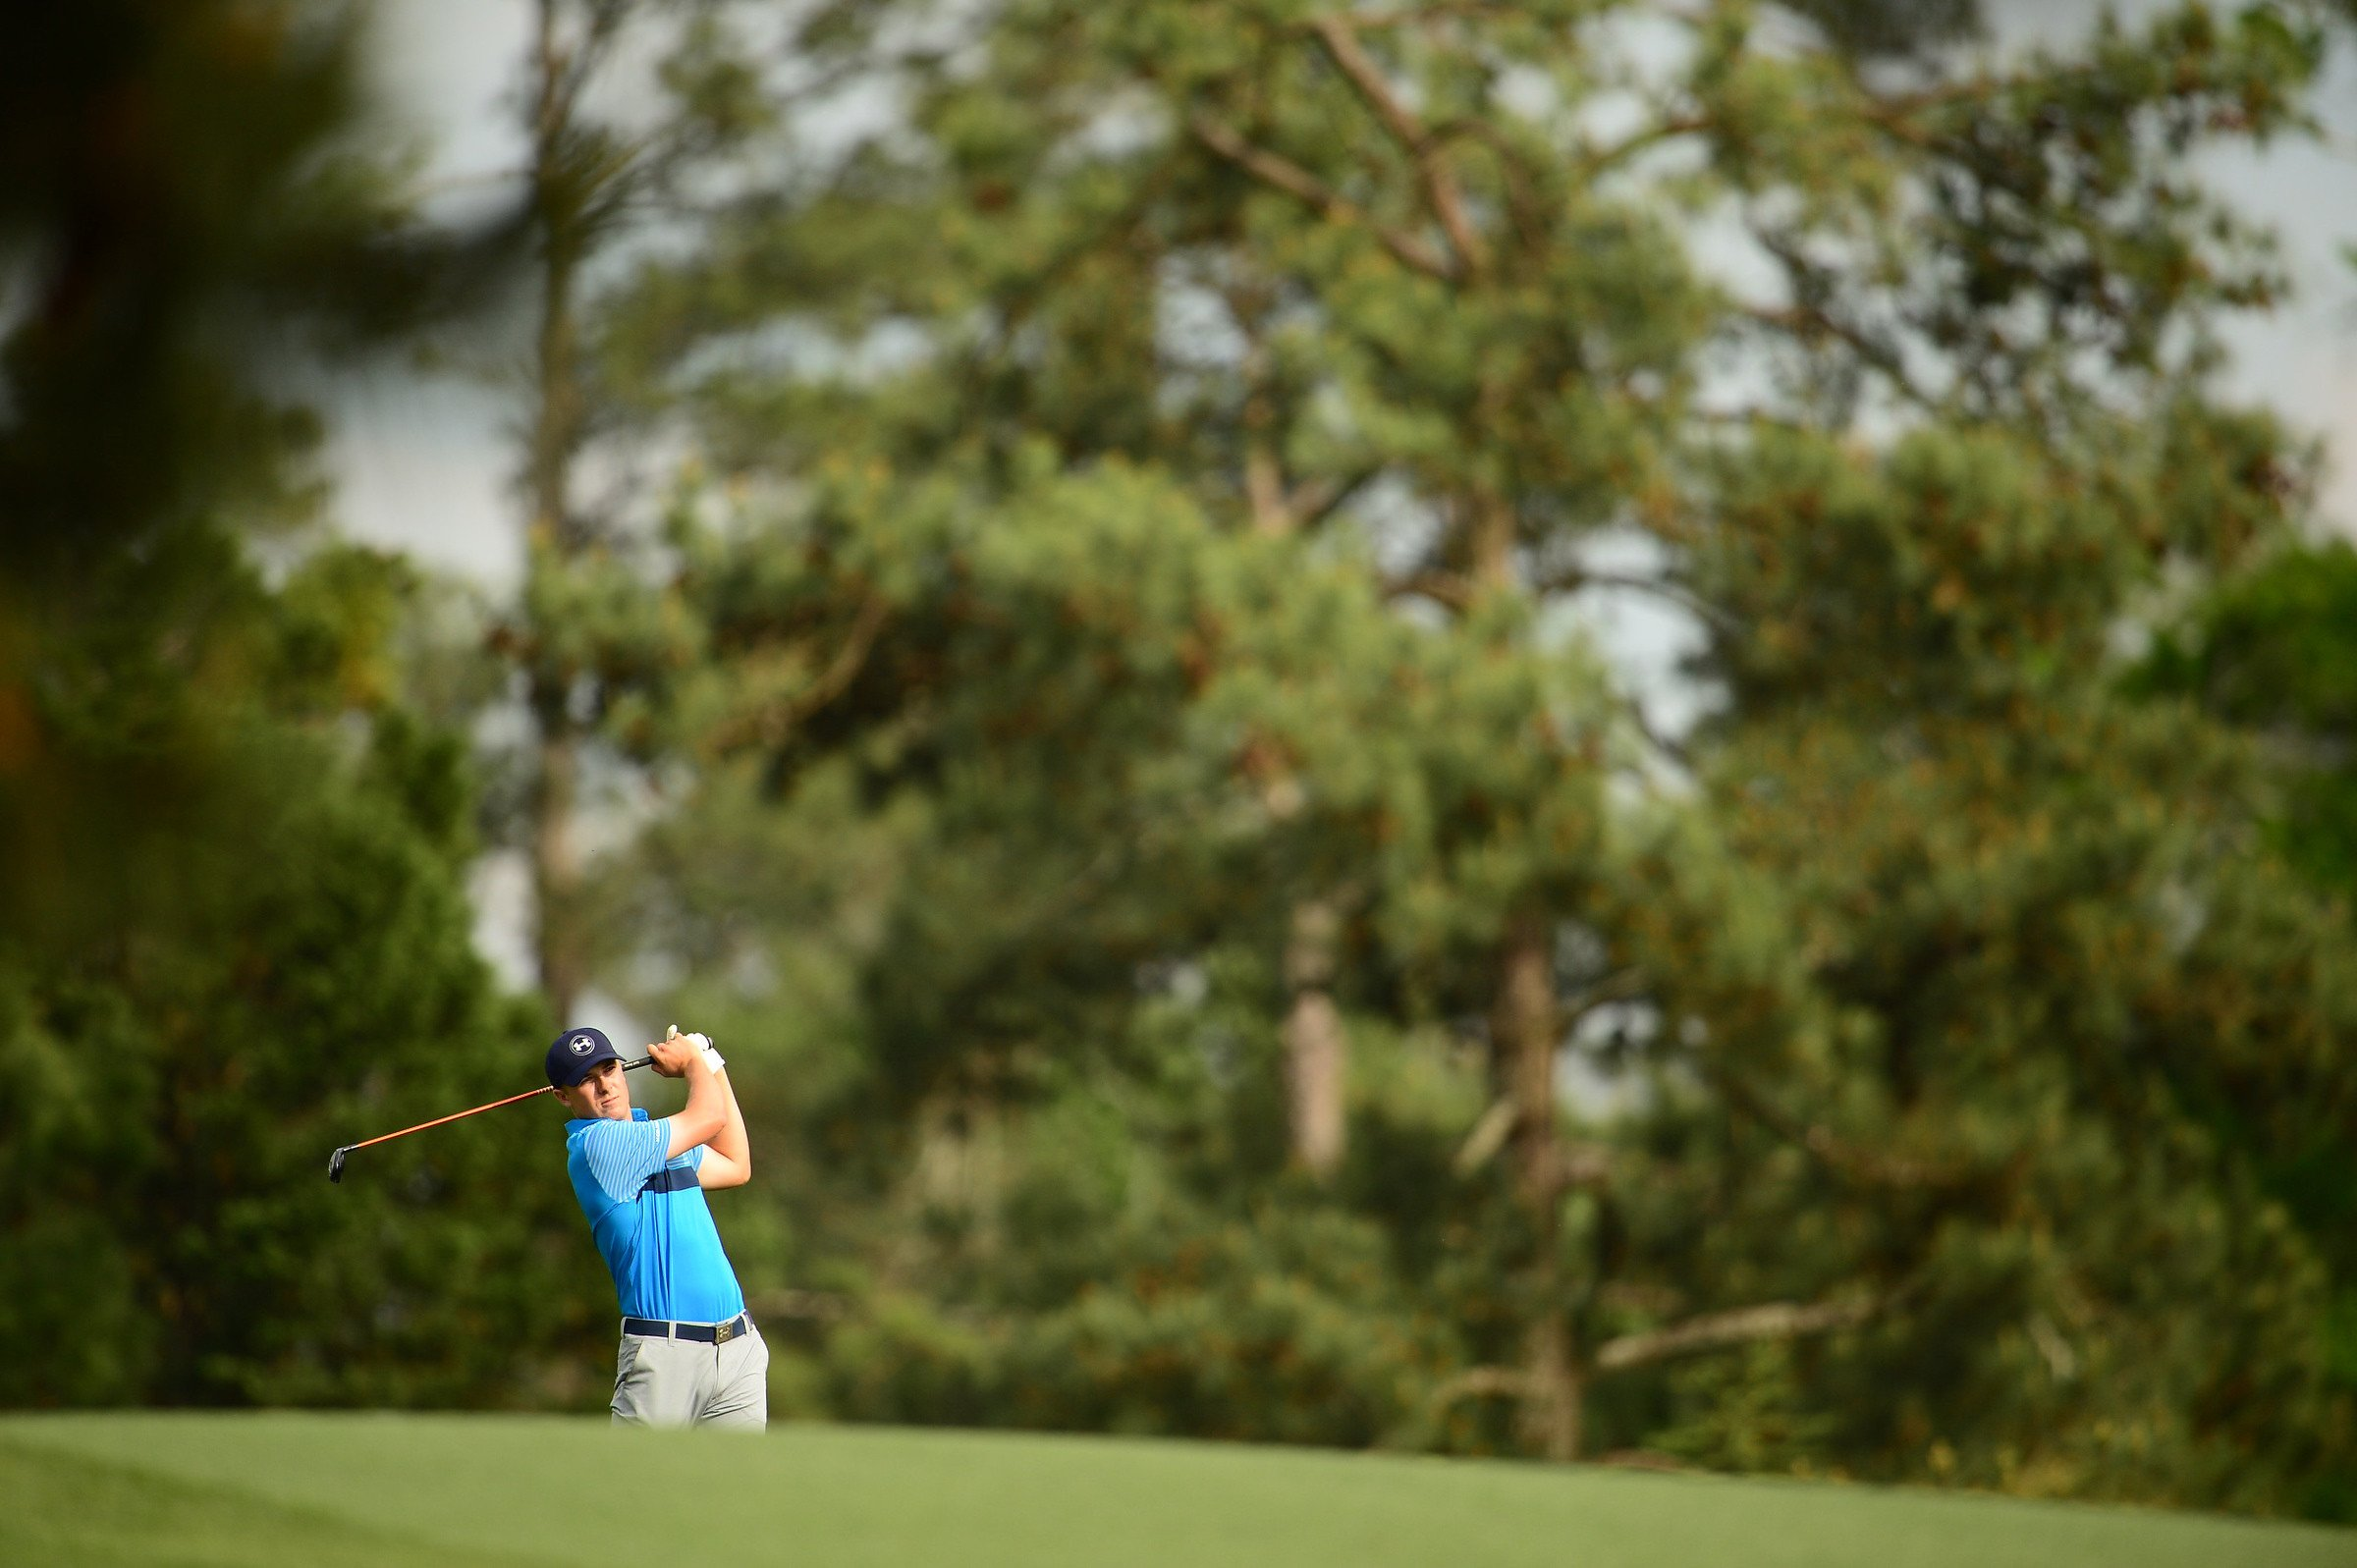 Jordan Spieth plays his second shot on the 15th hole at Augusta National during the 2015 Masters.